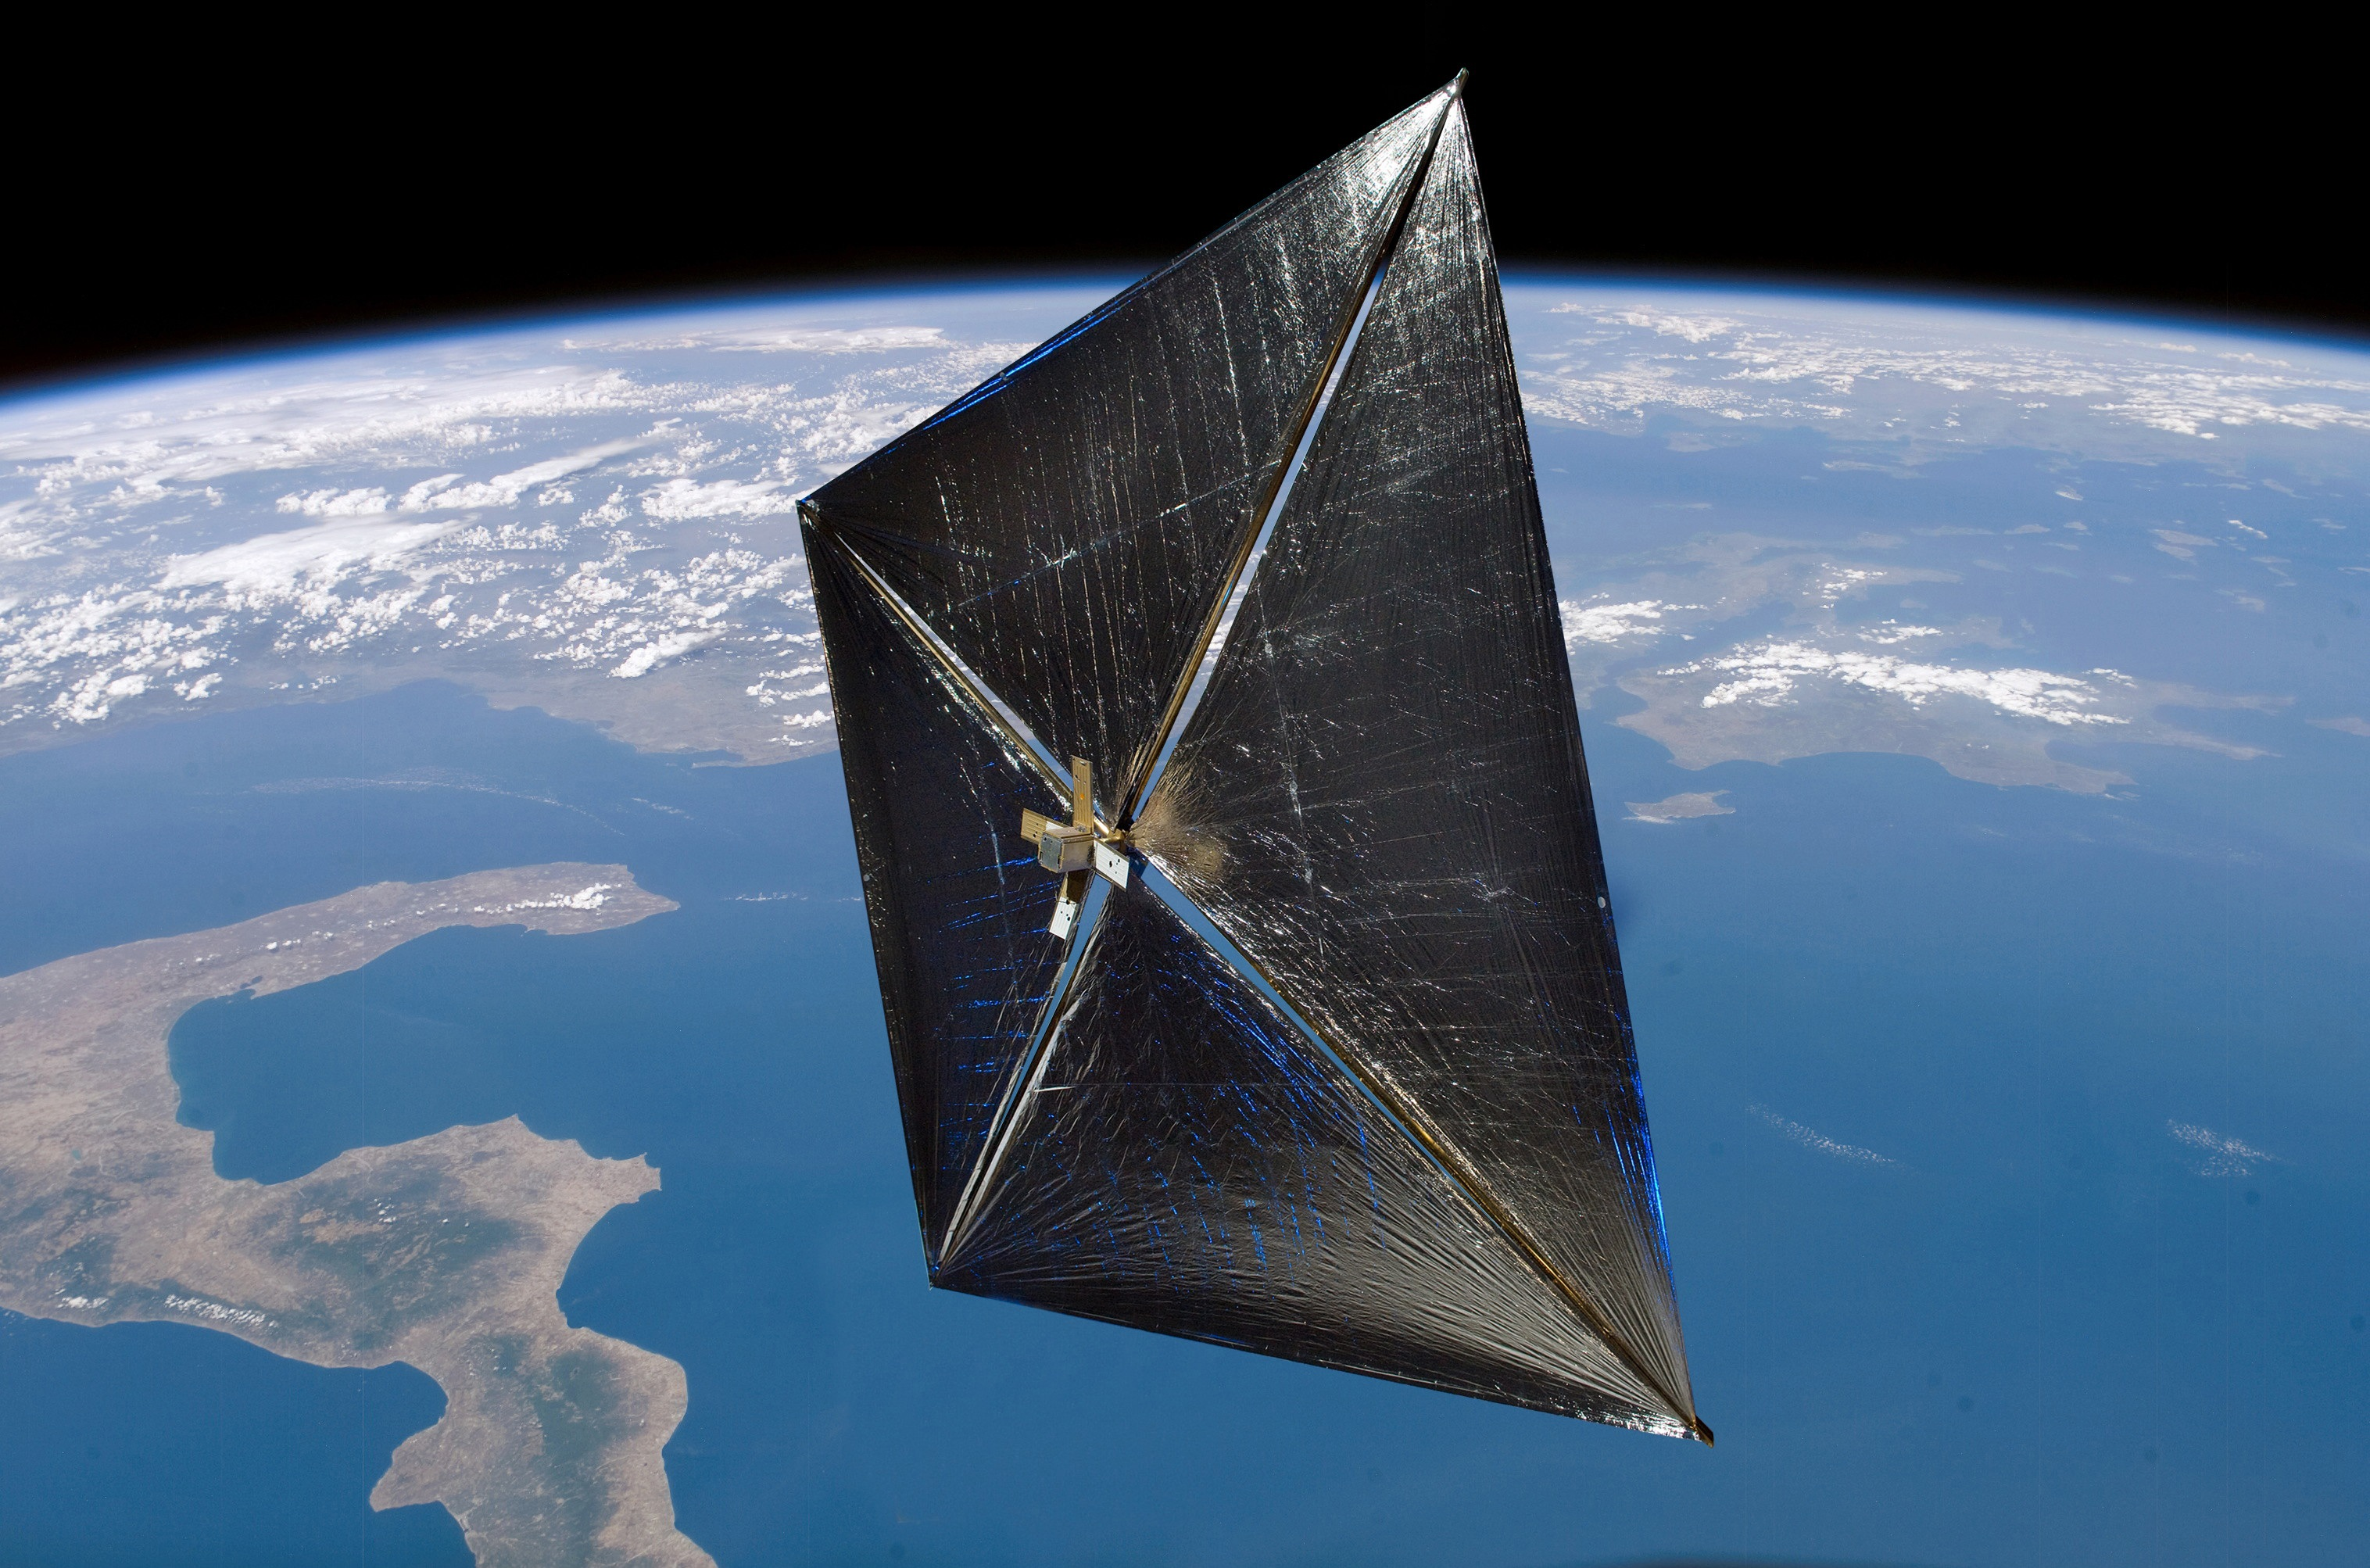 https://upload.wikimedia.org/wikipedia/commons/3/3b/NanoSail-D_in_orbit_%28artist_depiction%29.jpg